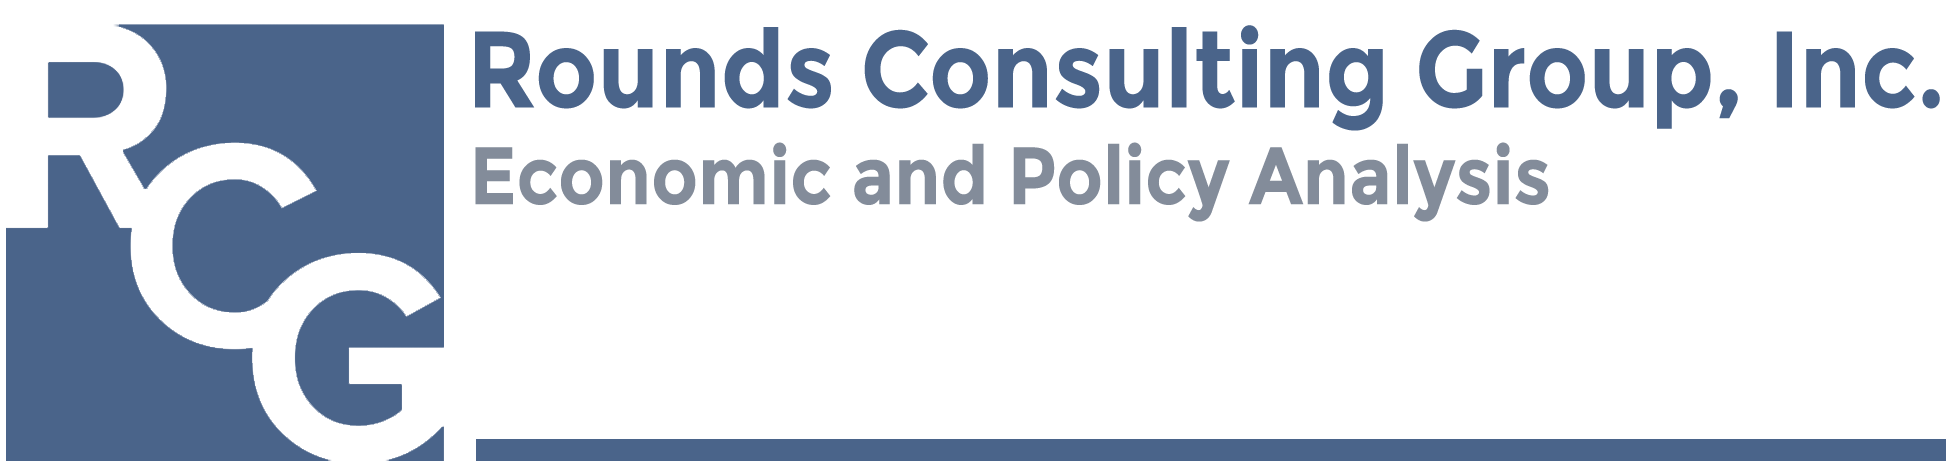 Rounds Consulting Group, Inc.